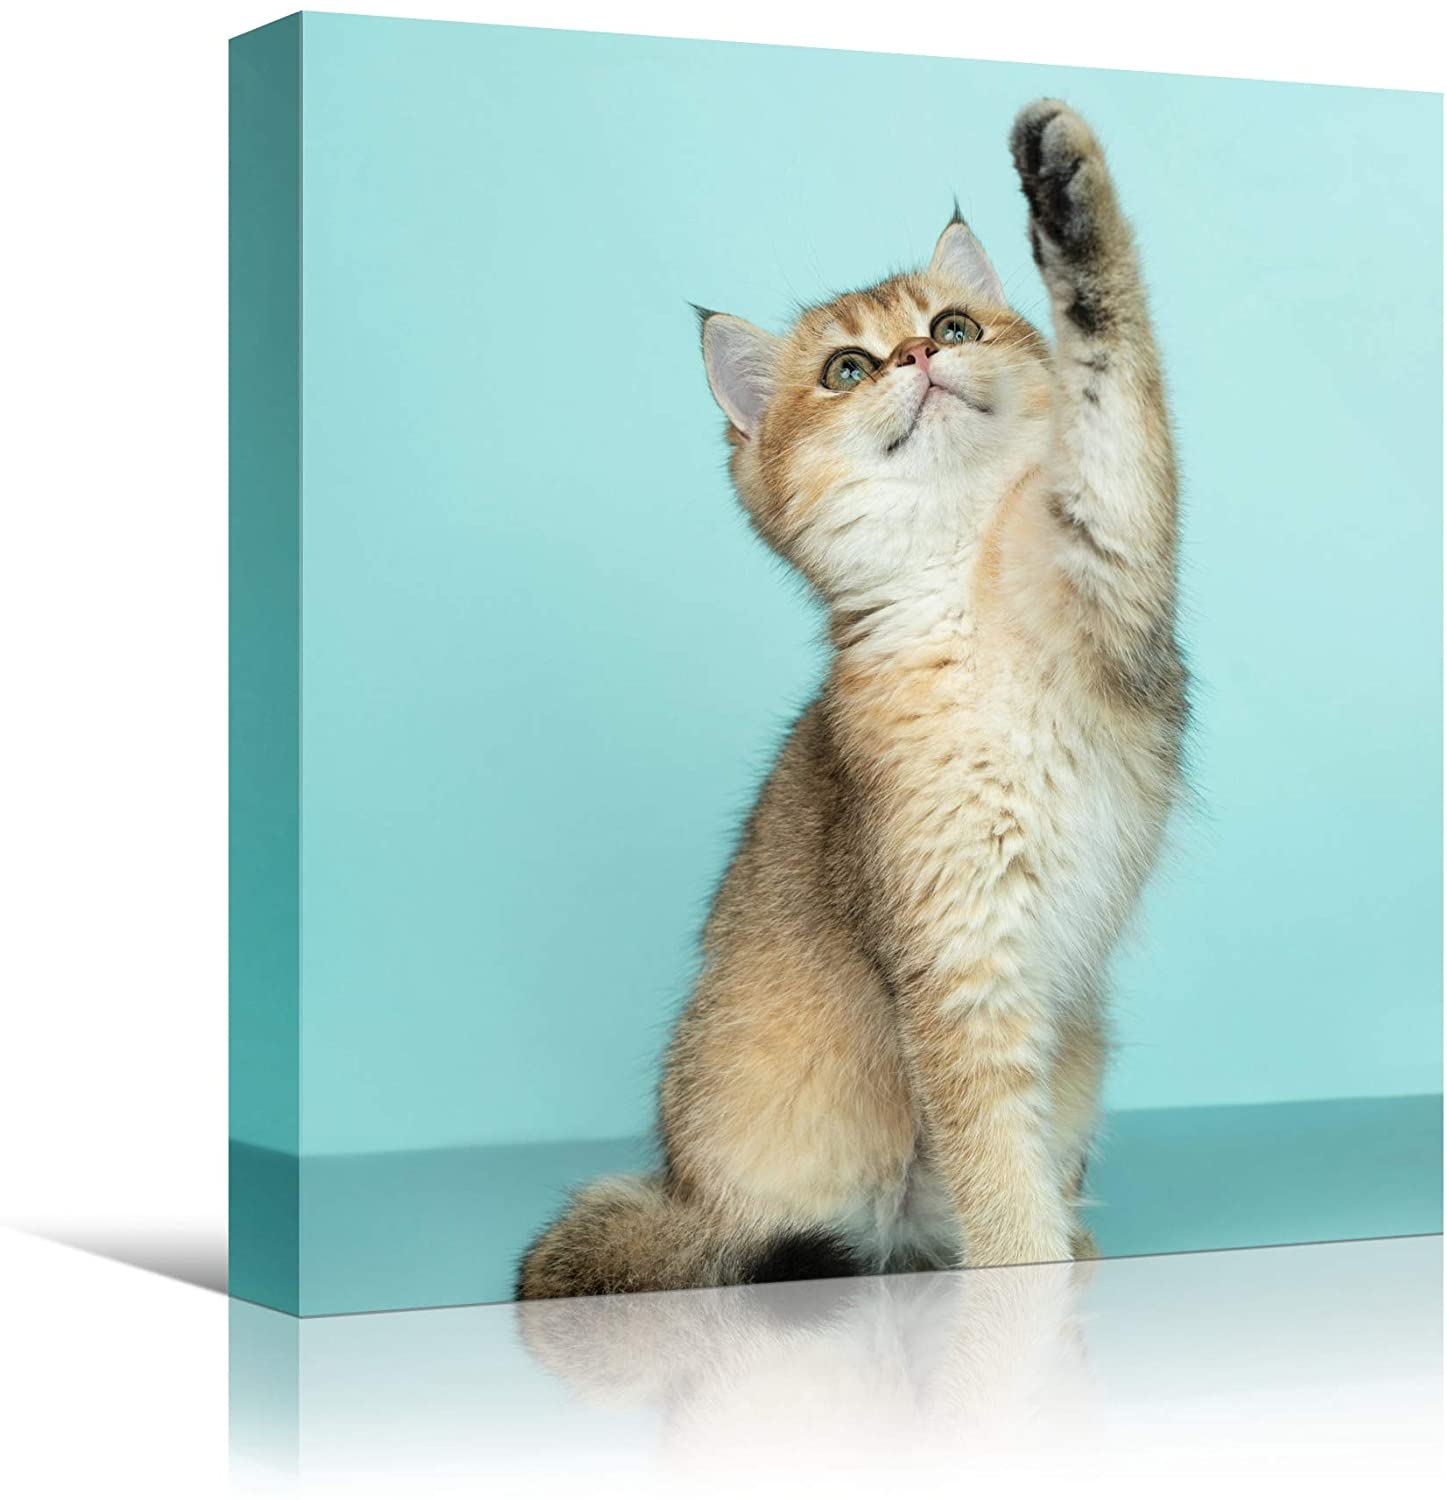 bestdeal depot Cat XX Animals Cat Chic Multicolor Photography Urban Wall Art Prints for Living Room,Bedroom Ready to Hang - 16x16 inches